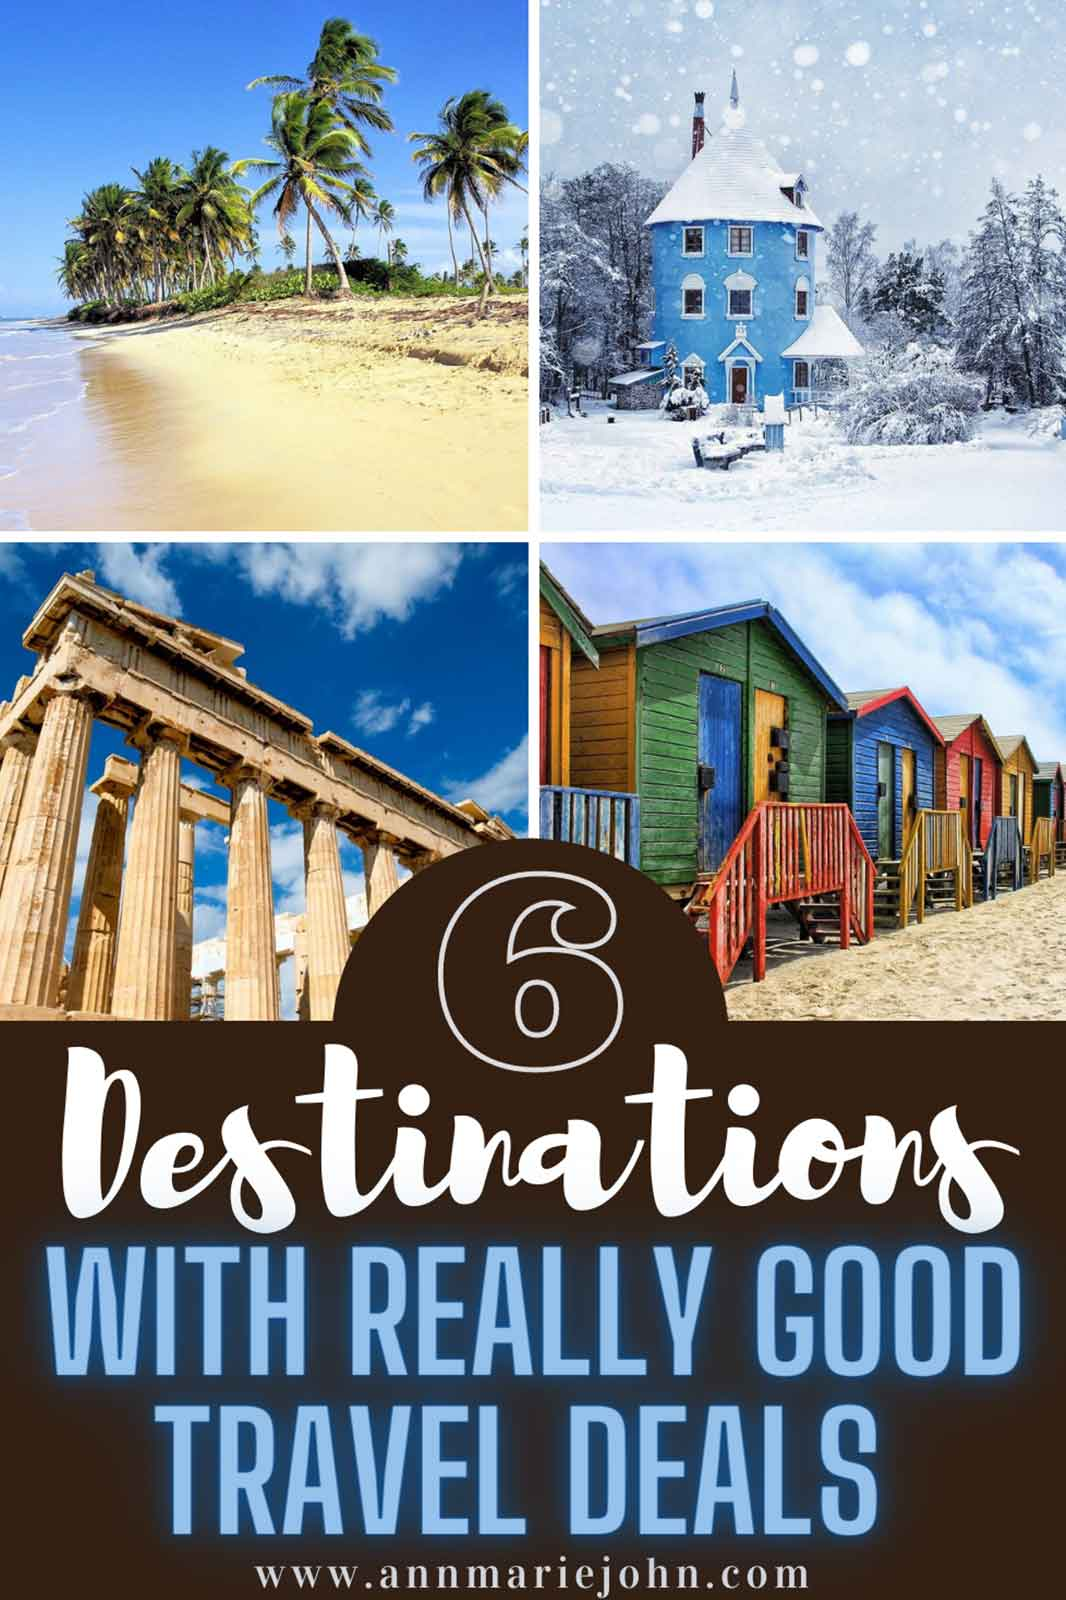 6 Destinations You Can Find Really Good Travel Deals For